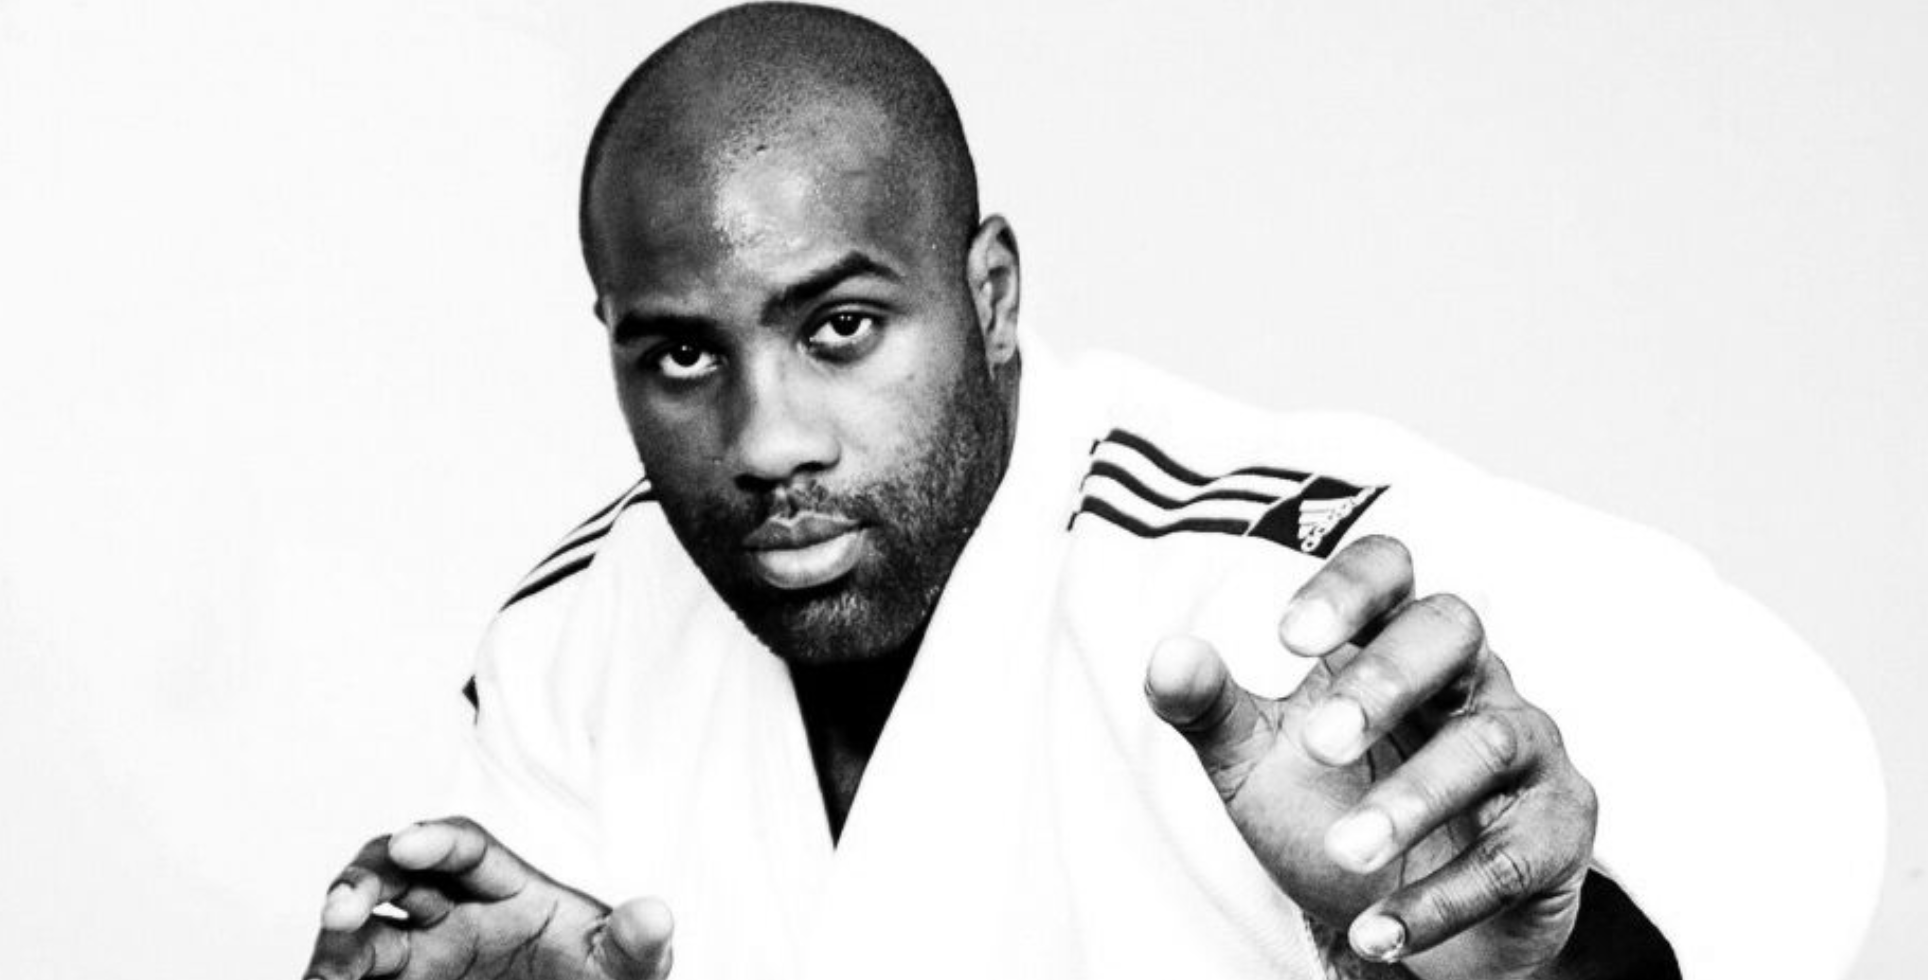 "Riner ""width ="" 1928 ""height ="" 980 ""srcset ="" https://fitness-inc.com/wp-content/uploads/2020/01/1580029209_751_Interview-with-the-unbeatable-Teddy-Riner.png 1928w, https://www.coachmagazine.fr/ wp-content / uploads / 2019/07 / teddy-300x152.png 300w, https://www.coachmagazine.fr/wp-content/uploads/2019/07/teddy-768x390.png 768w, https: // www. coachmagazine.fr/wp-content/uploads/2019/07/teddy-1024x520.png 1024w, https://www.coachmagazine.fr/wp-content/uploads/2019/07/teddy-696x354.png 696w, https: //www.coachmagazine.fr/wp-content/uploads/2019/07/teddy-1068x543.png 1068w, https://www.coachmagazine.fr/wp-content/uploads/2019/07/teddy-826x420.png 826w ""sizes ="" (max-width: 1928px) 100vw, 1928px"